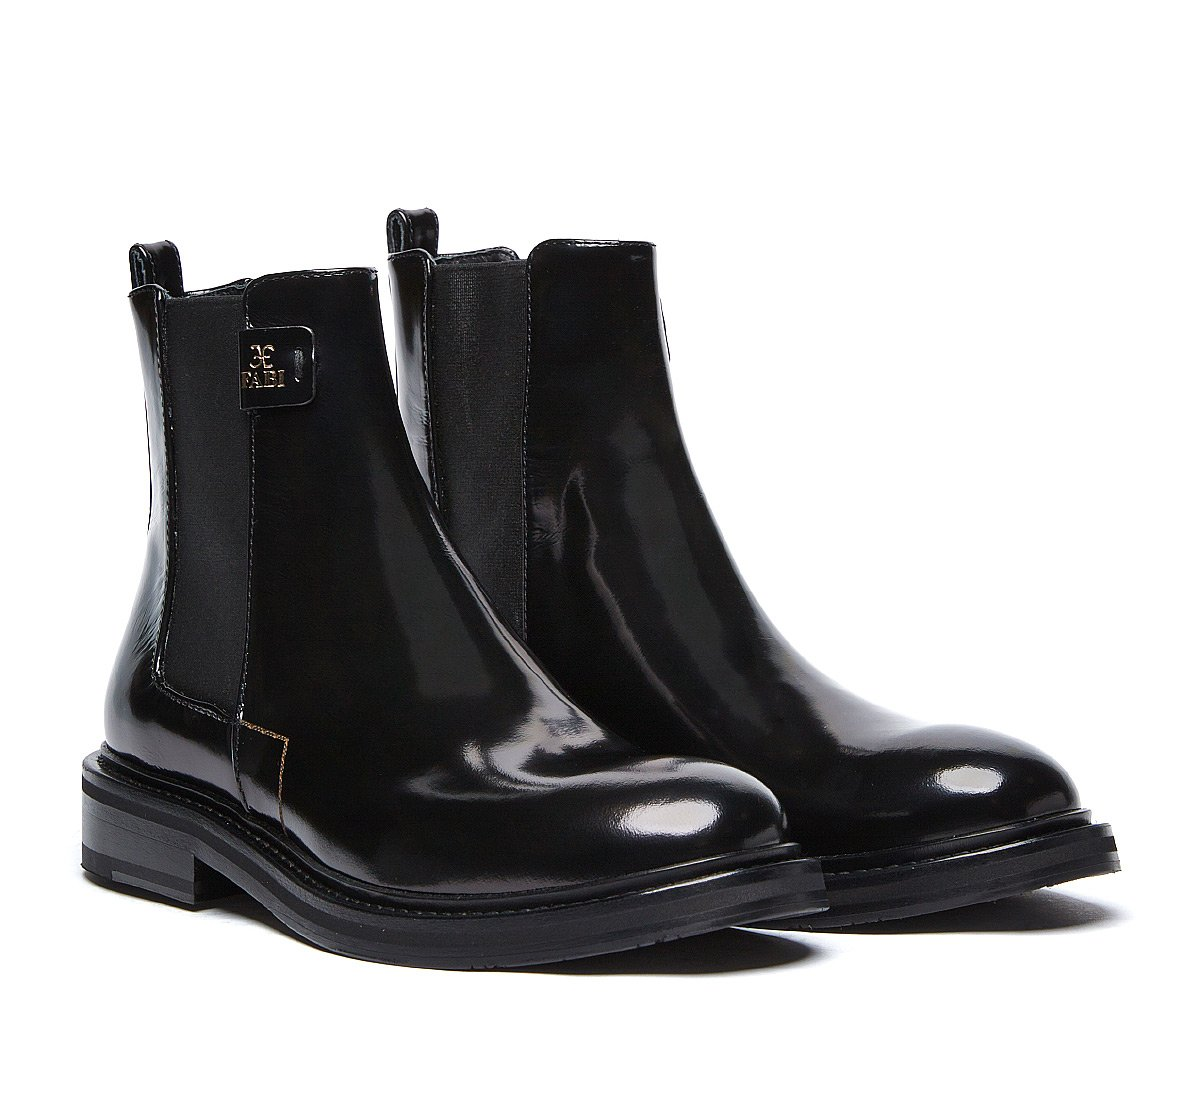 Beatle boot in shiny calf leather